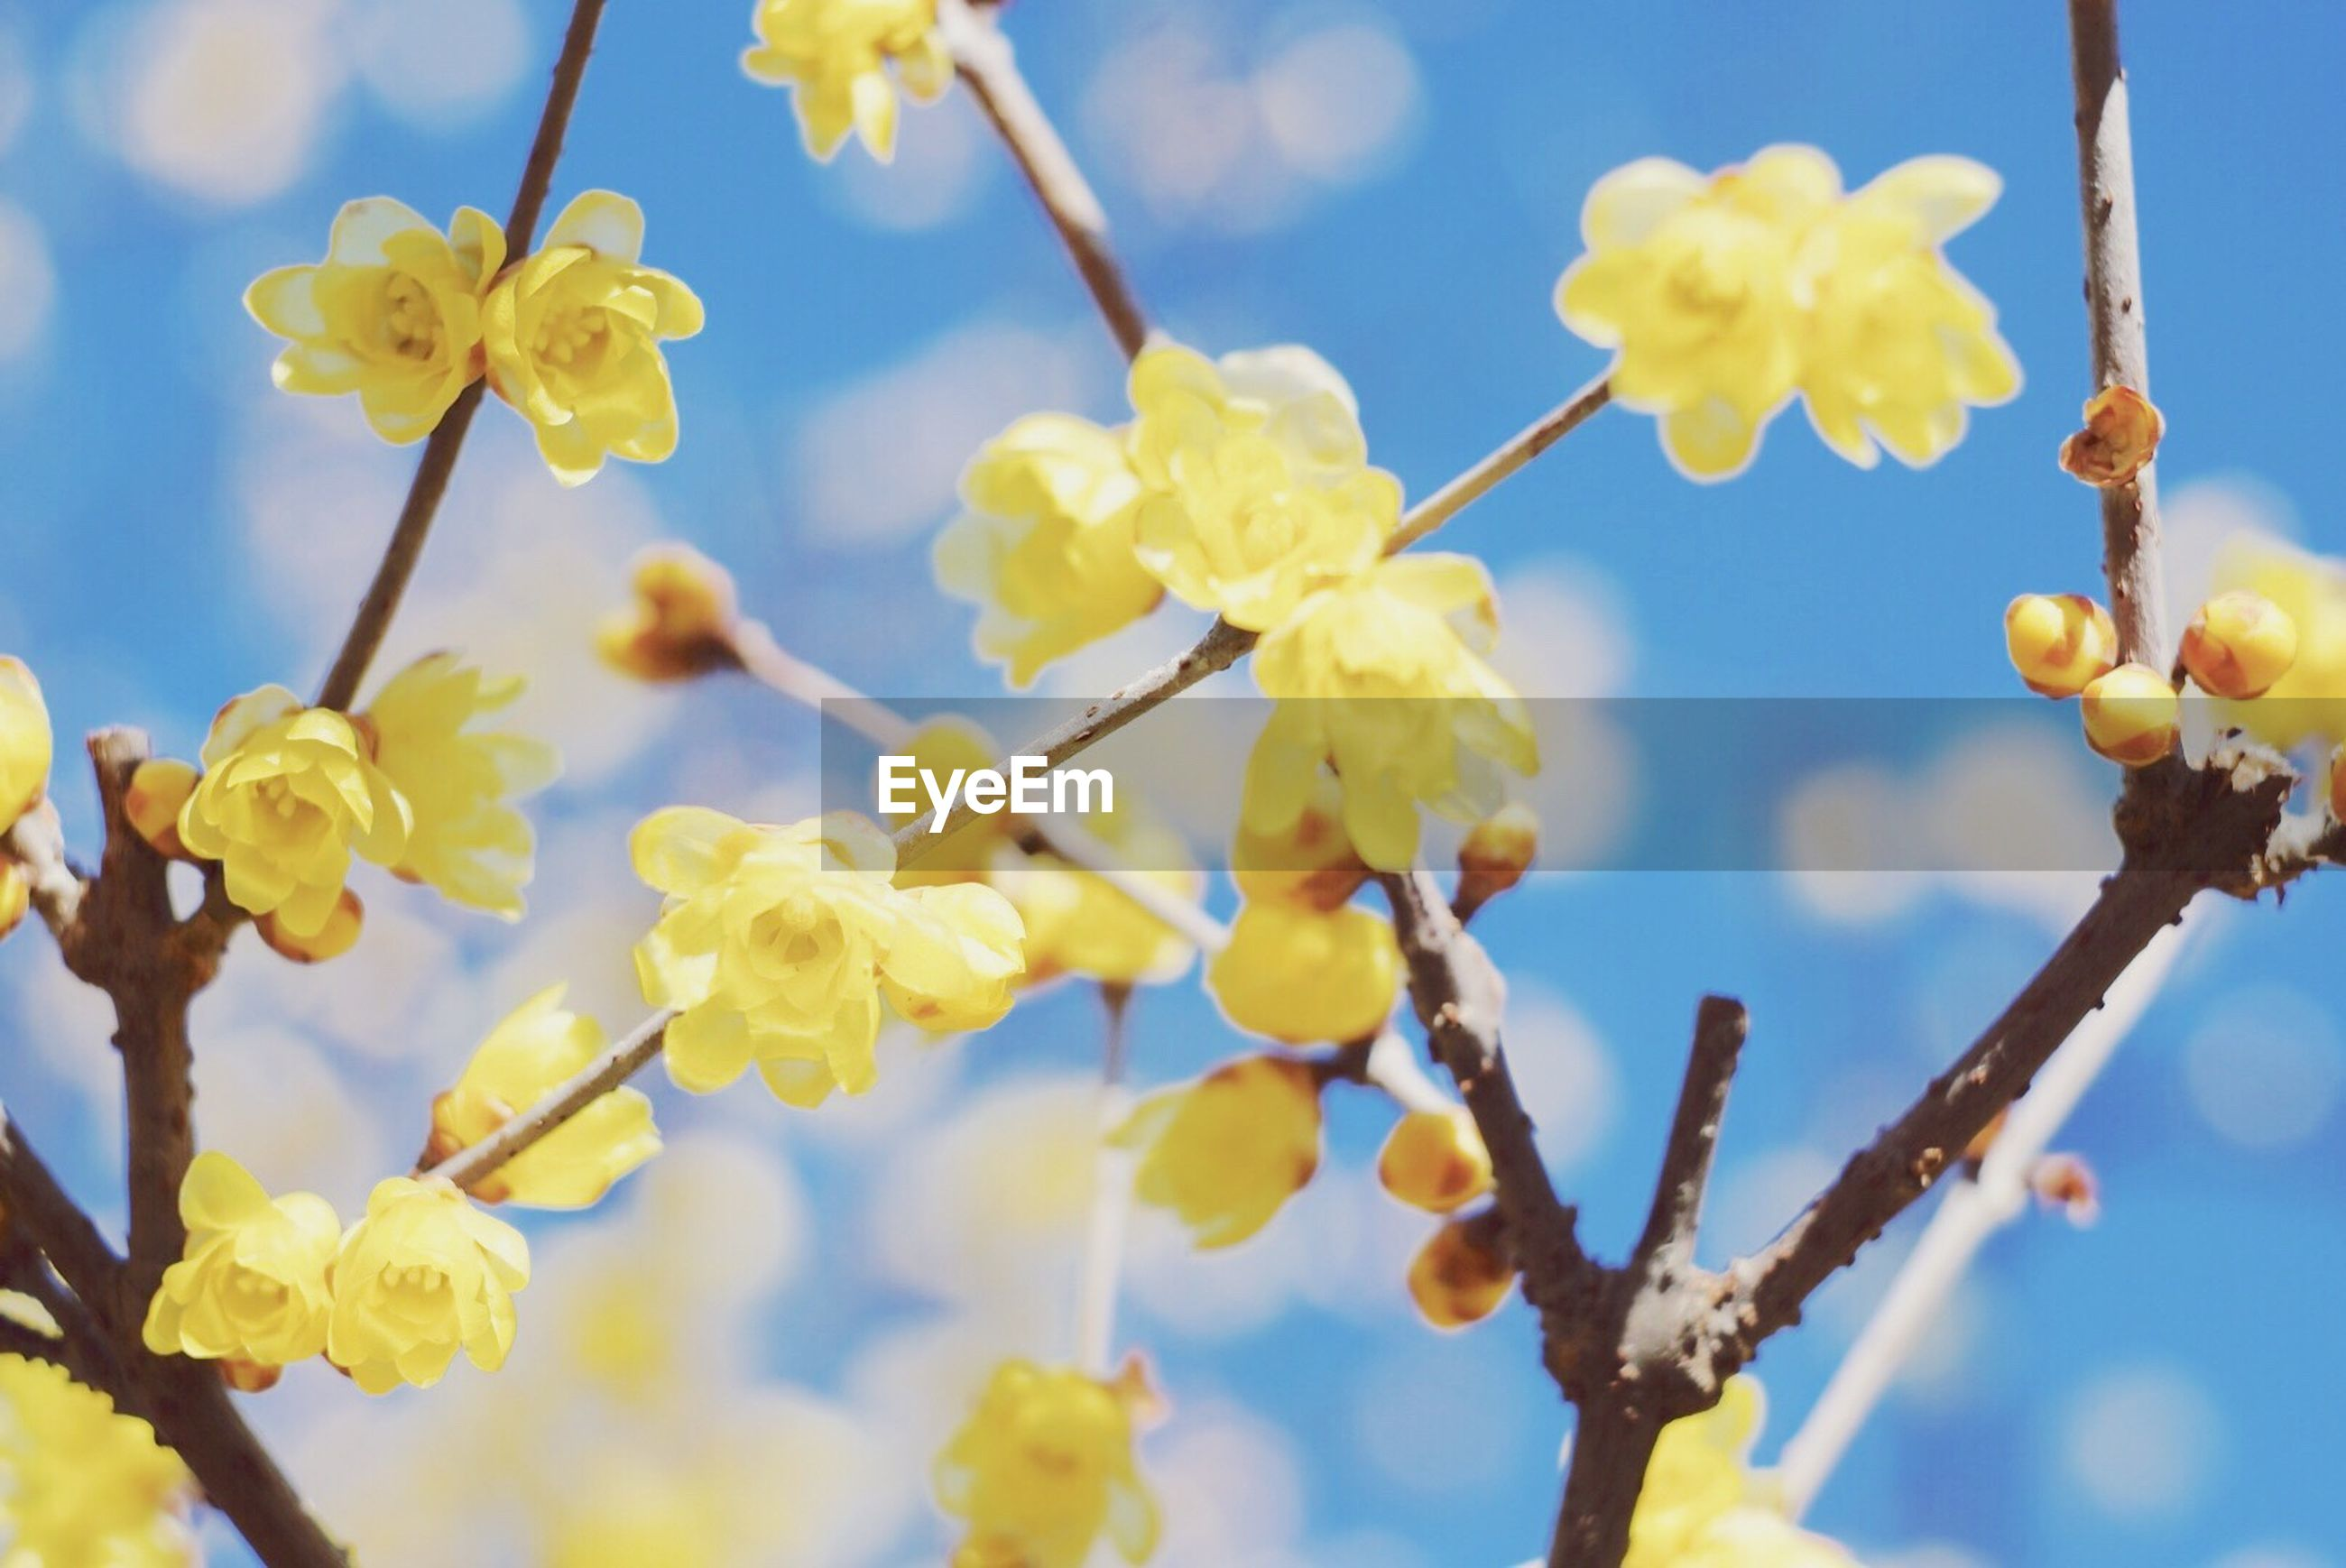 nature, growth, beauty in nature, low angle view, fragility, yellow, no people, close-up, tree, day, outdoors, sky, freshness, branch